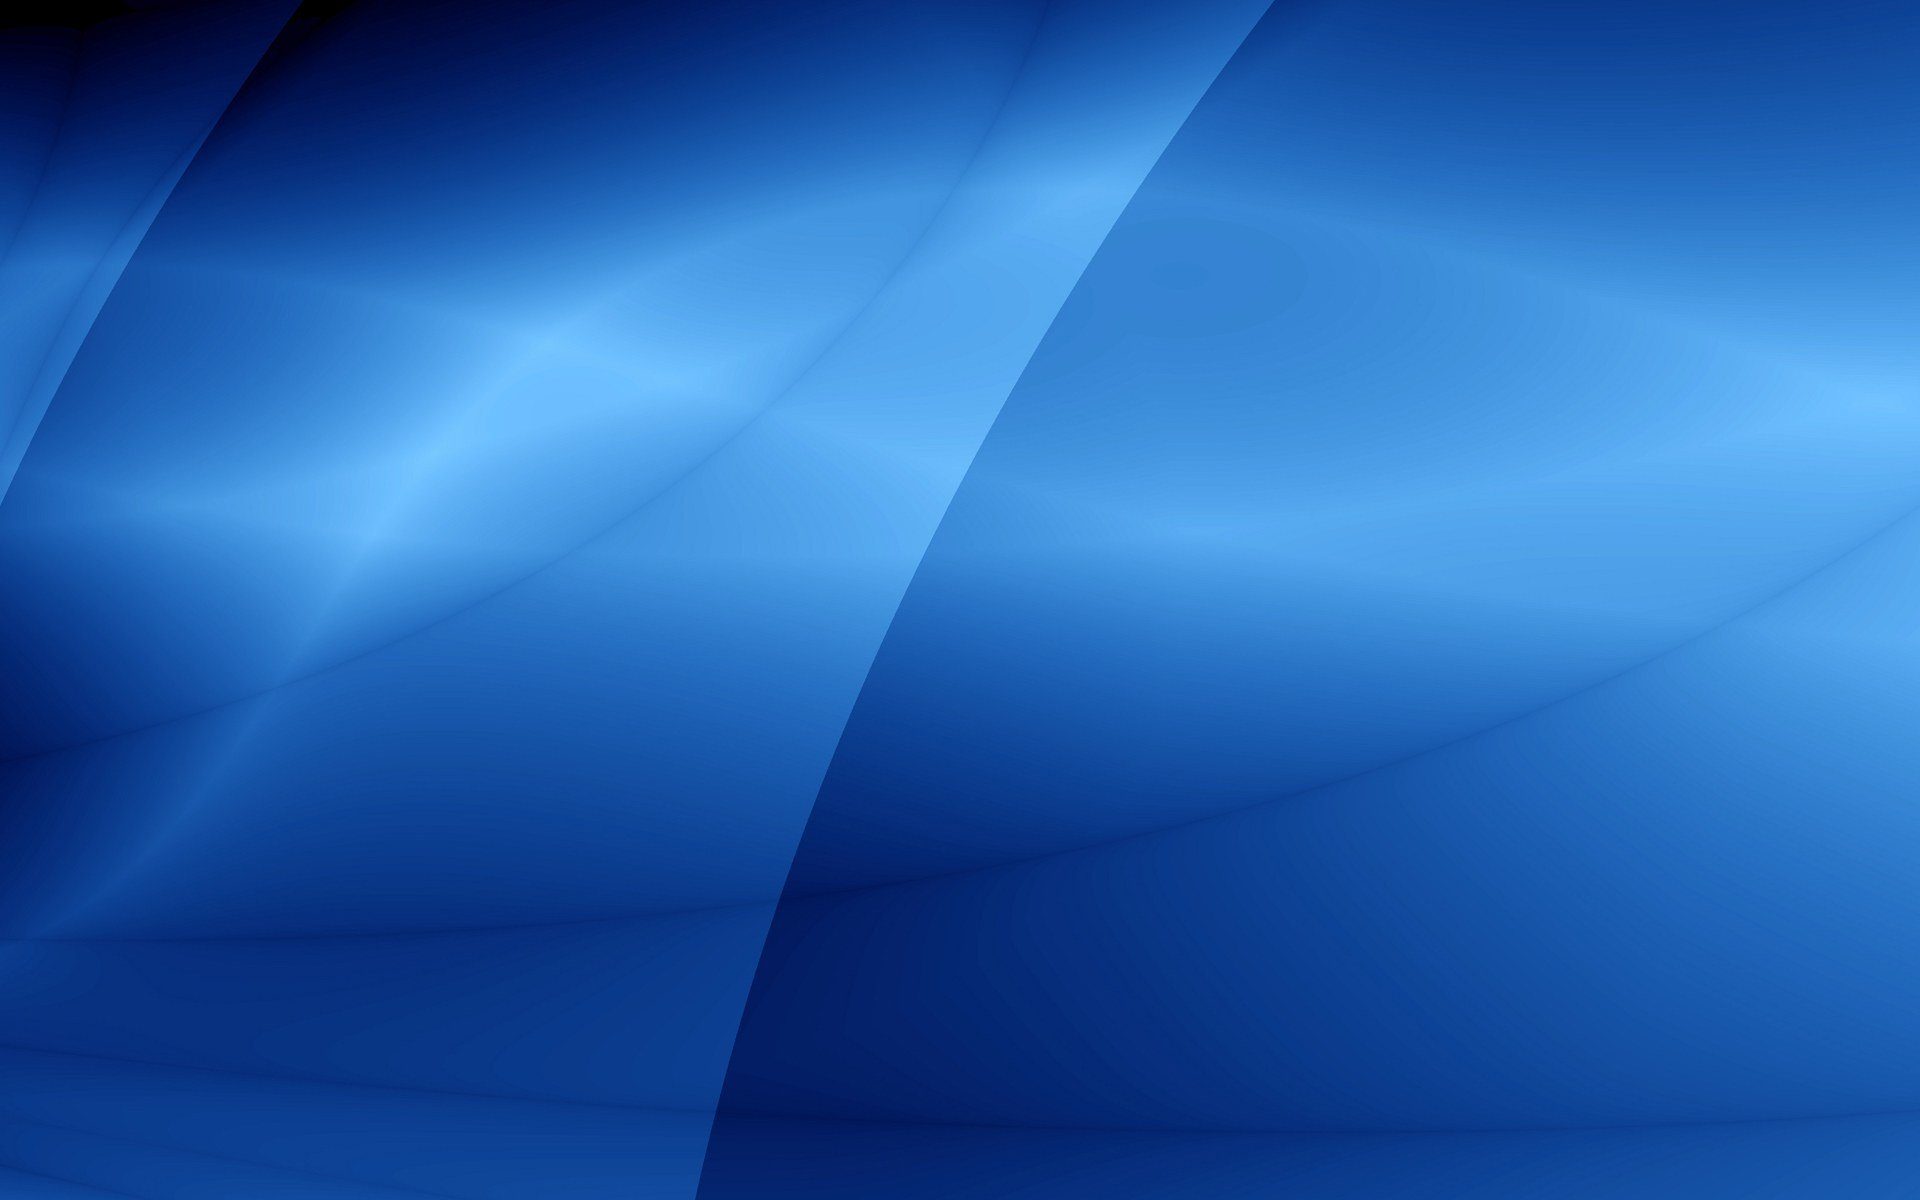 69 4K Blue Wallpaper Backgrounds That Will Give Your 1920x1200